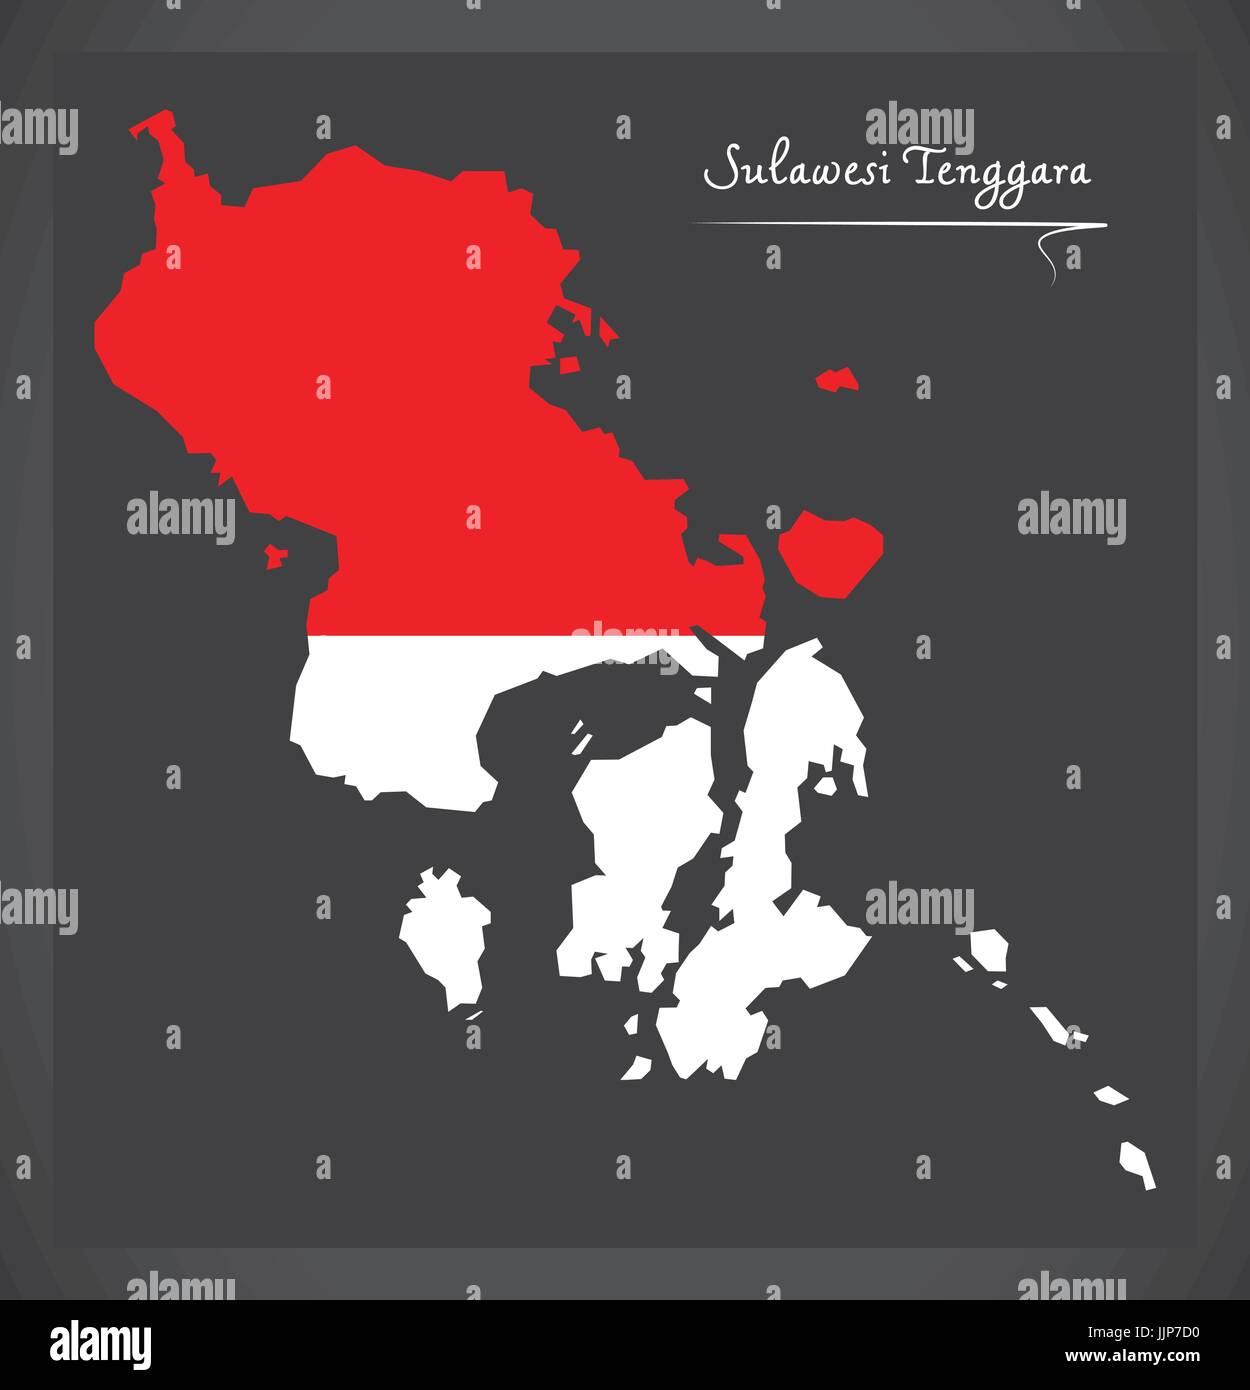 Sulawesi Tenggara Indonesia map with Indonesian national flag illustration - Stock Vector